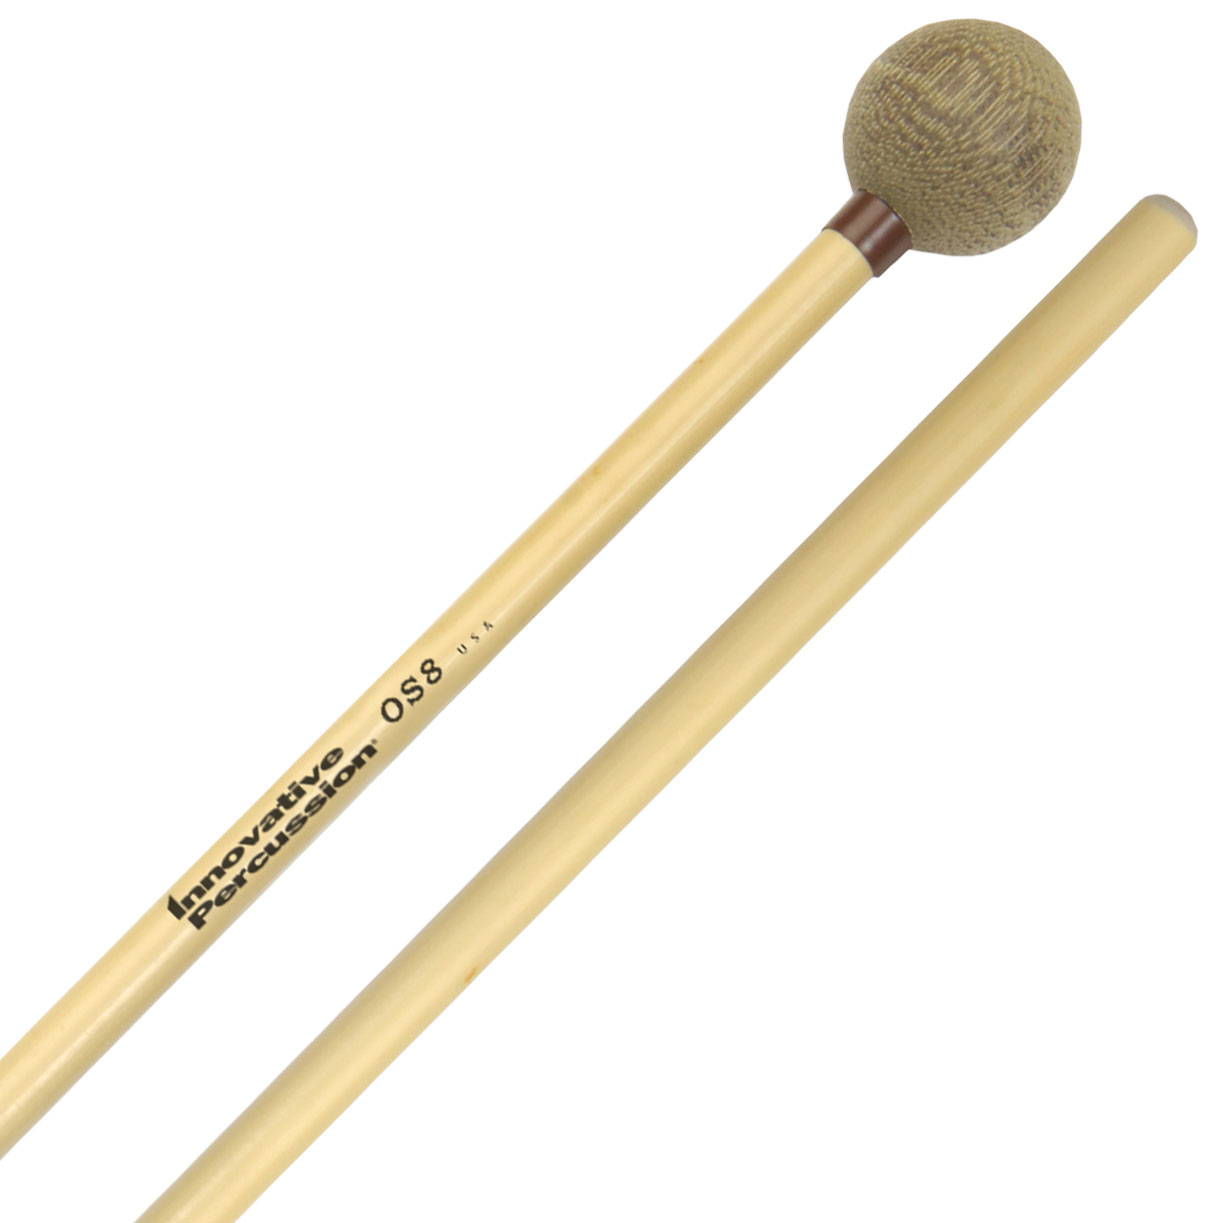 Innovative Percussion OS8 Orchestral Series Large Size Extremely Bright Xylophone/Glockenspiel Mallets